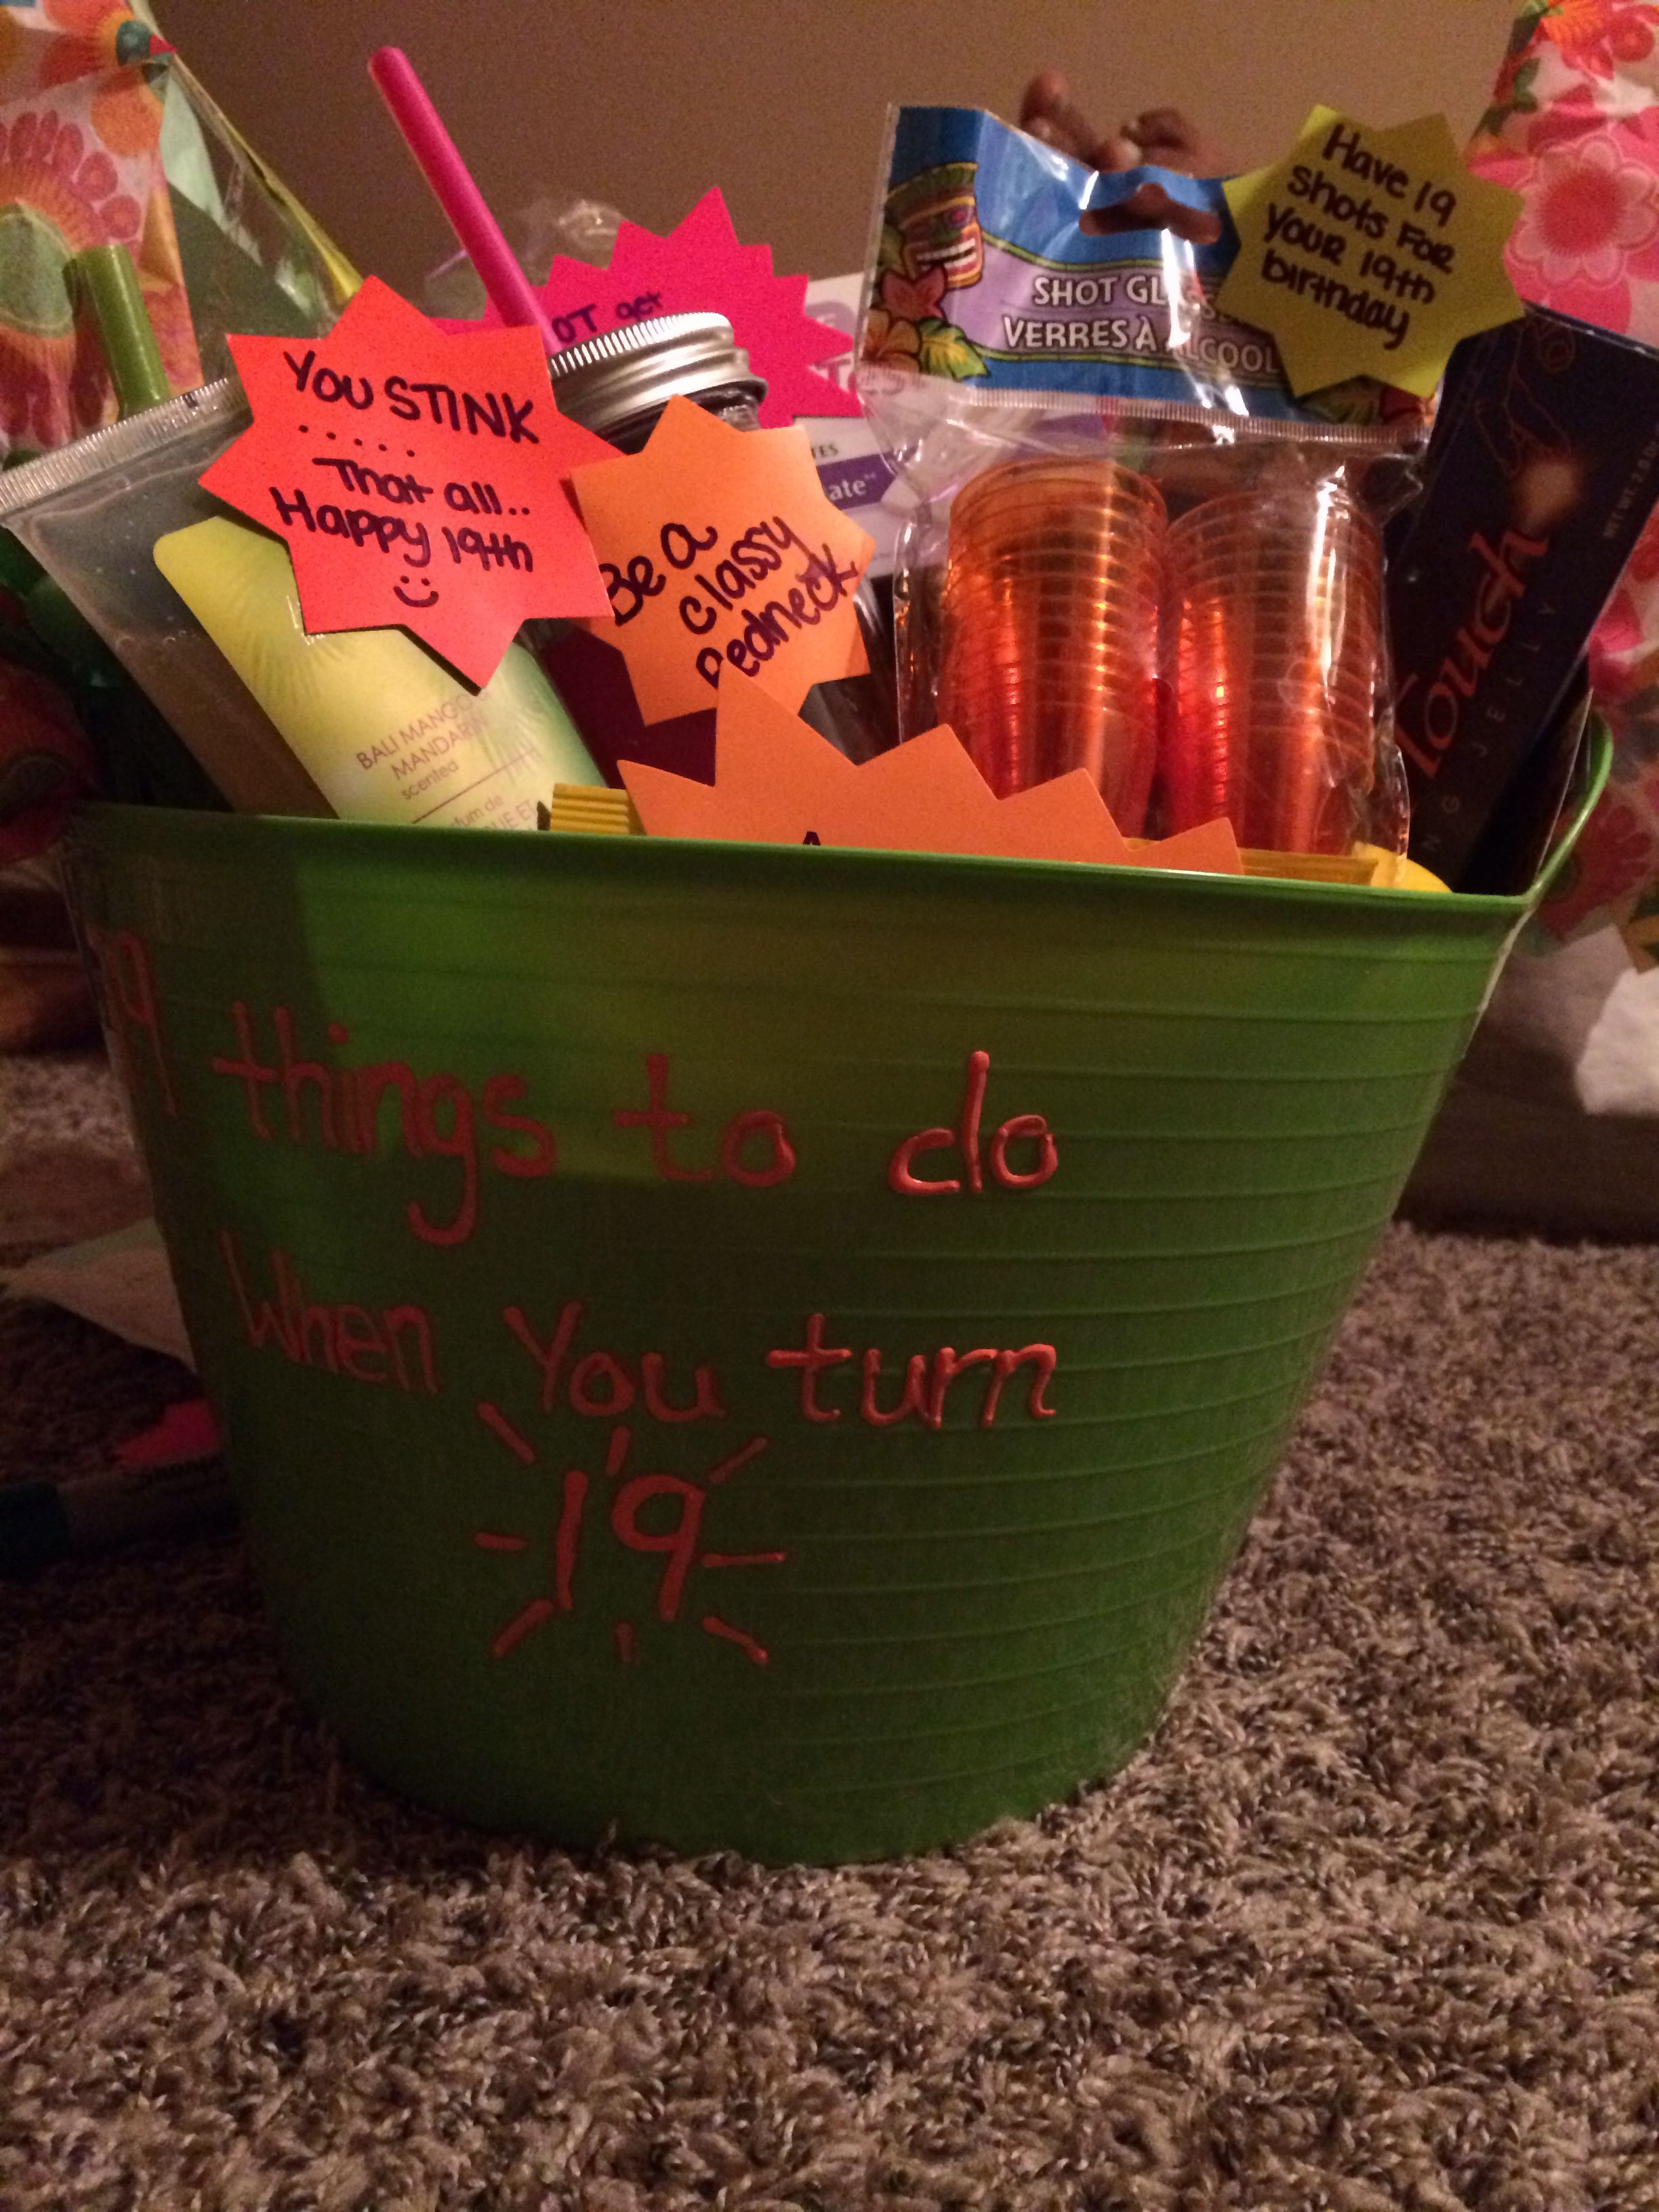 A 19th Birthday gift basket made with 19th things; We